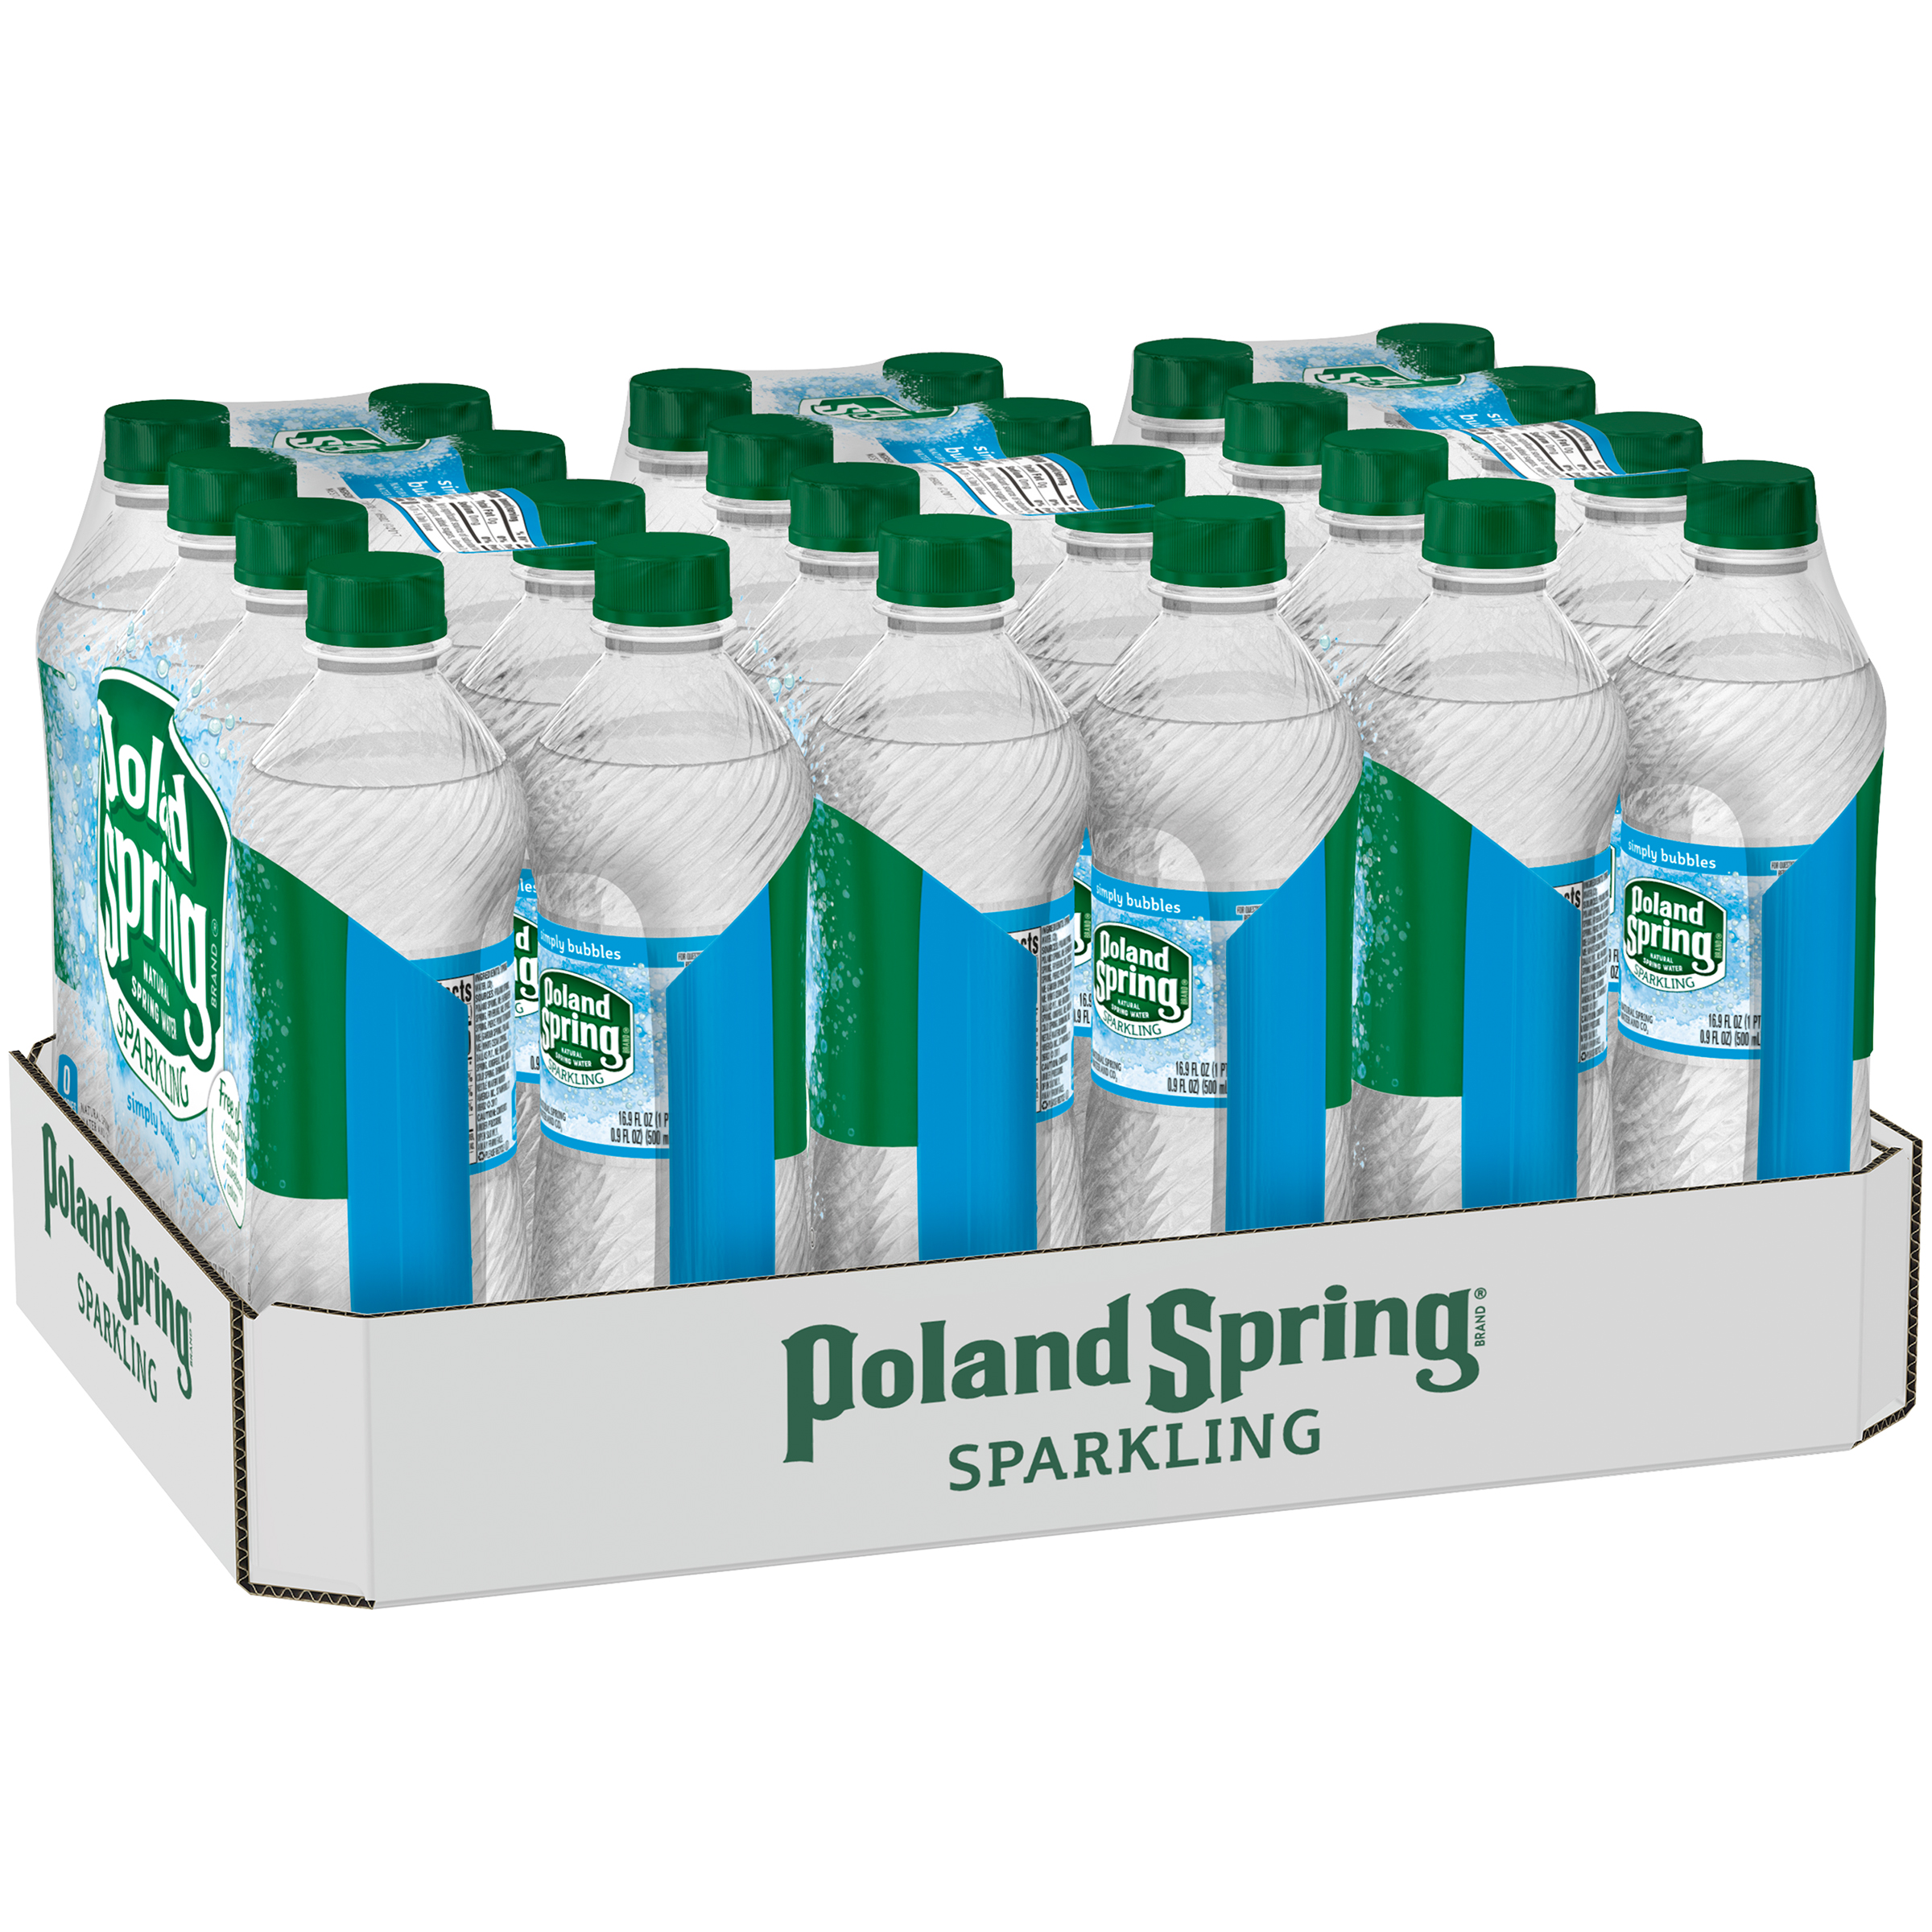 POLAND SPRING Sparkling Simply Bubbles Natural Spring Water 24 ct Pack